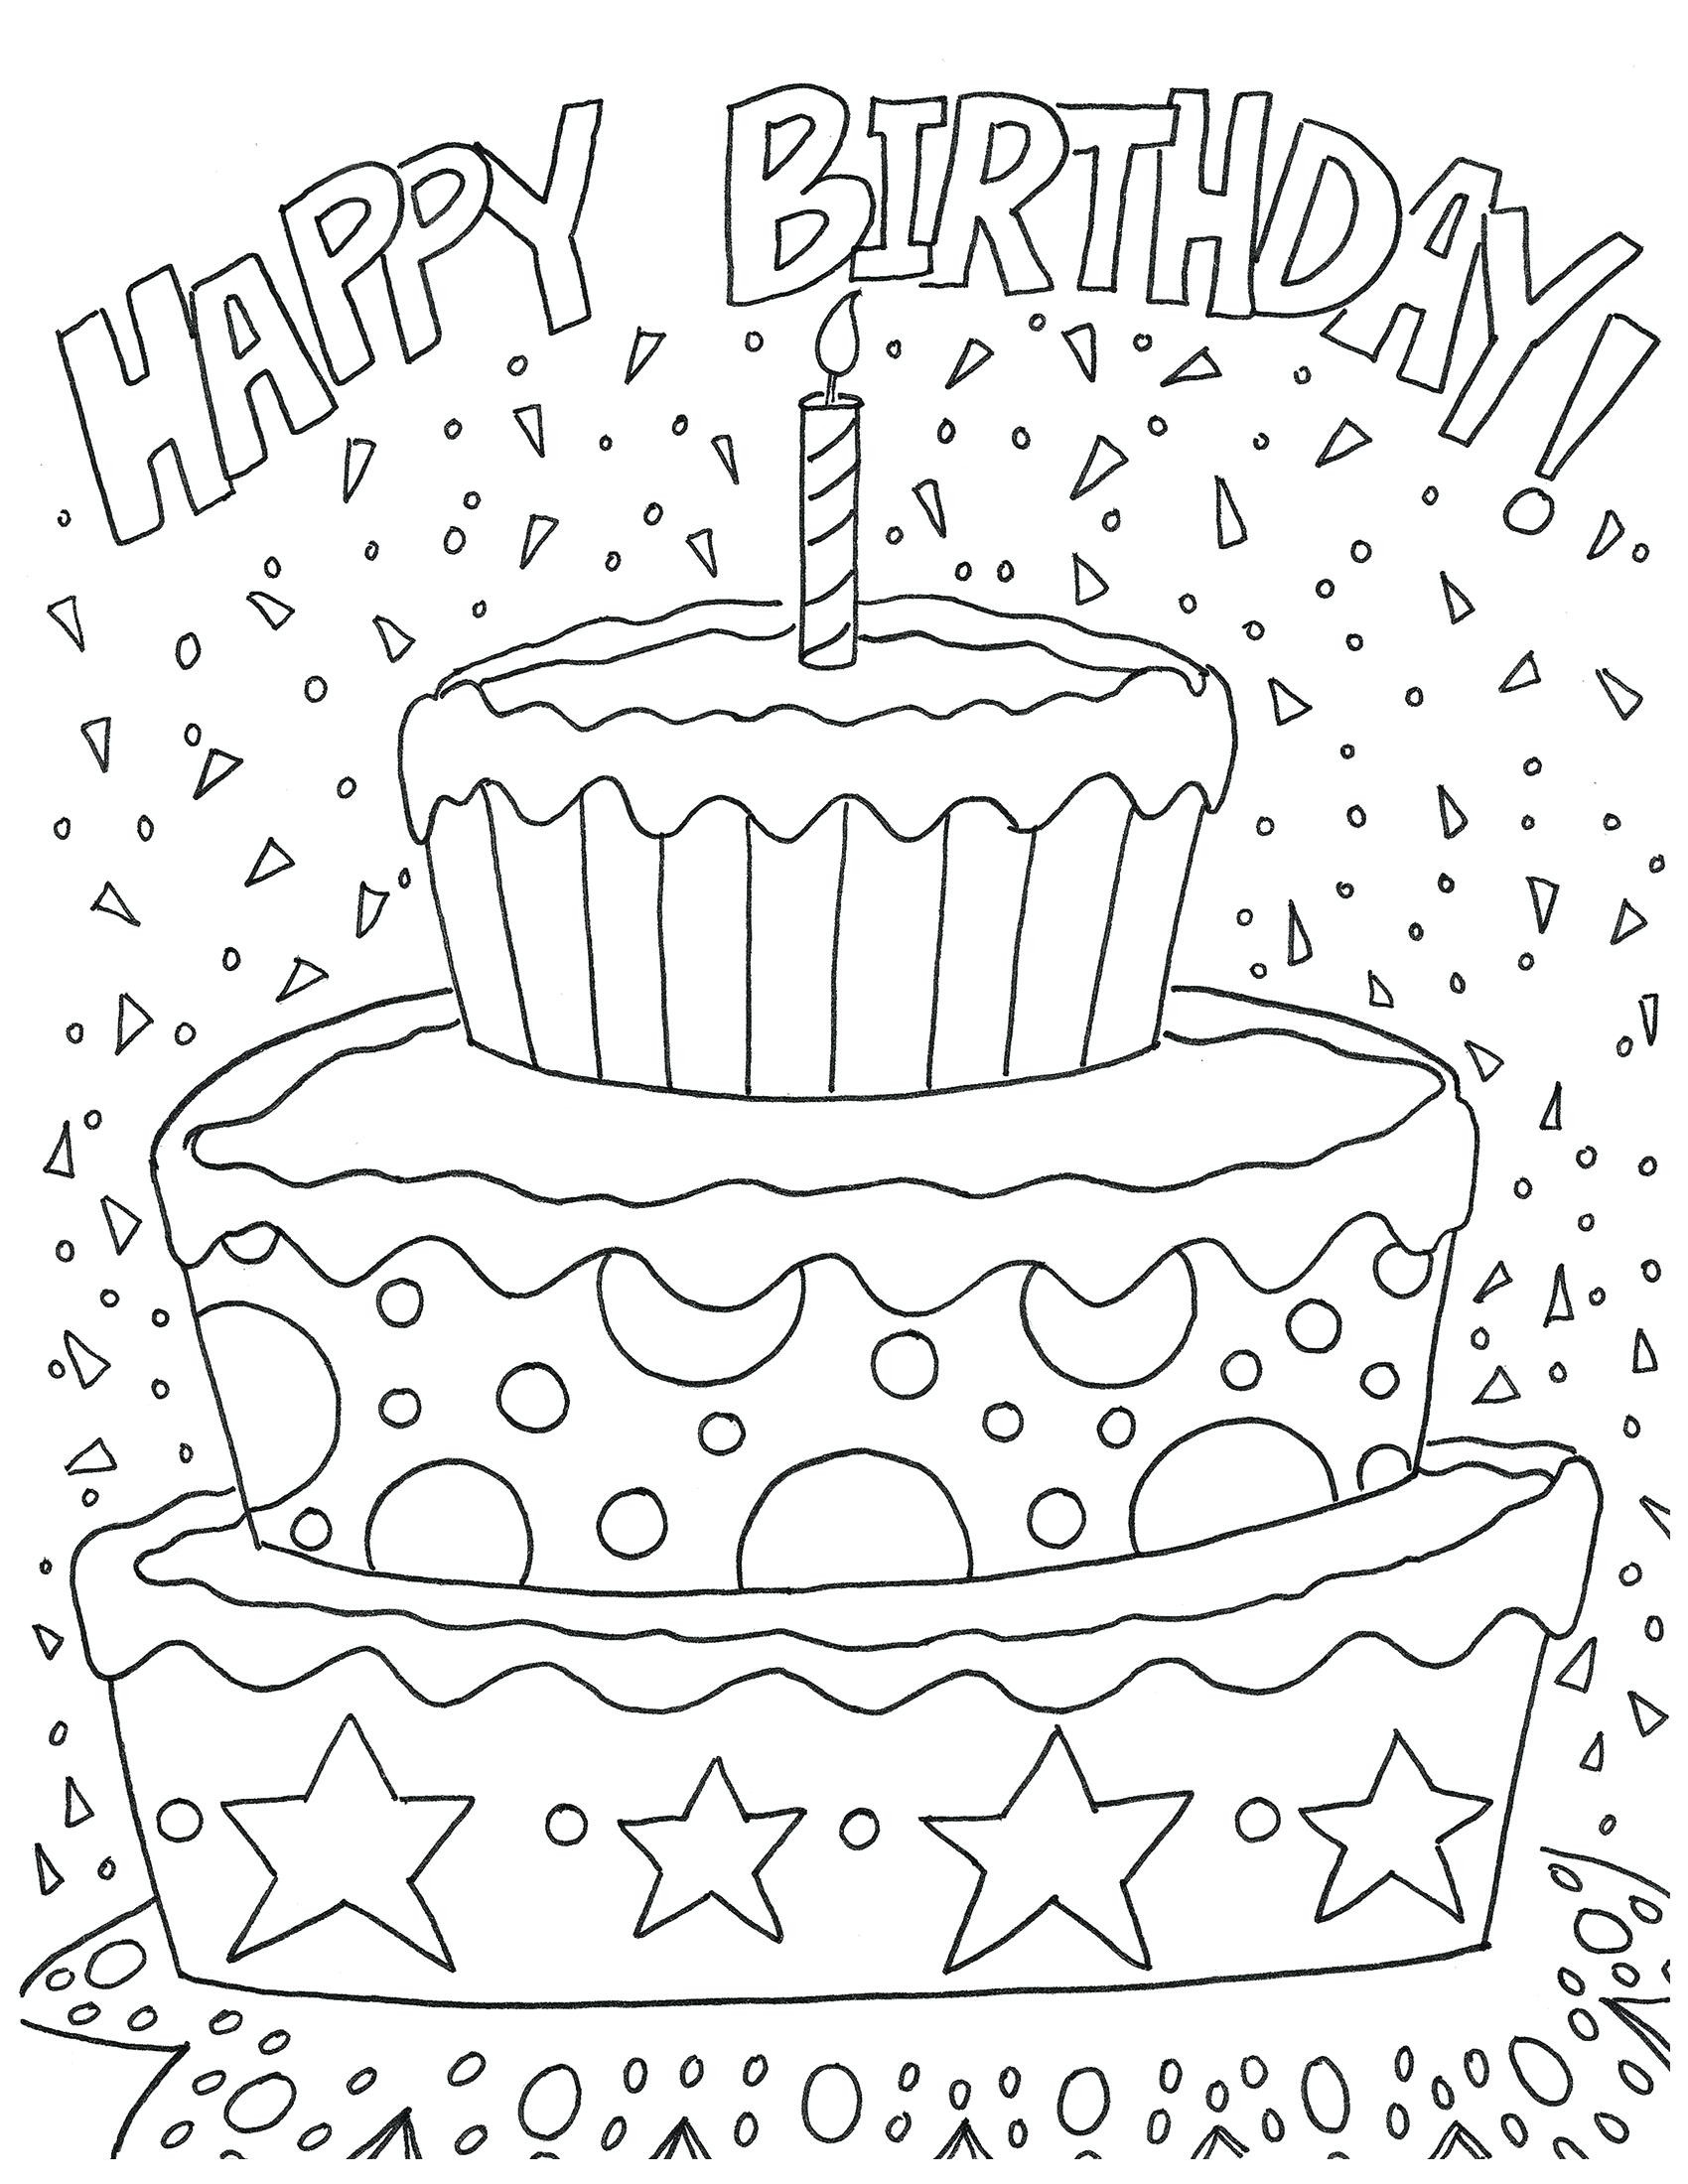 Happy Birthday Coloring Pages For Adults at GetDrawings ...